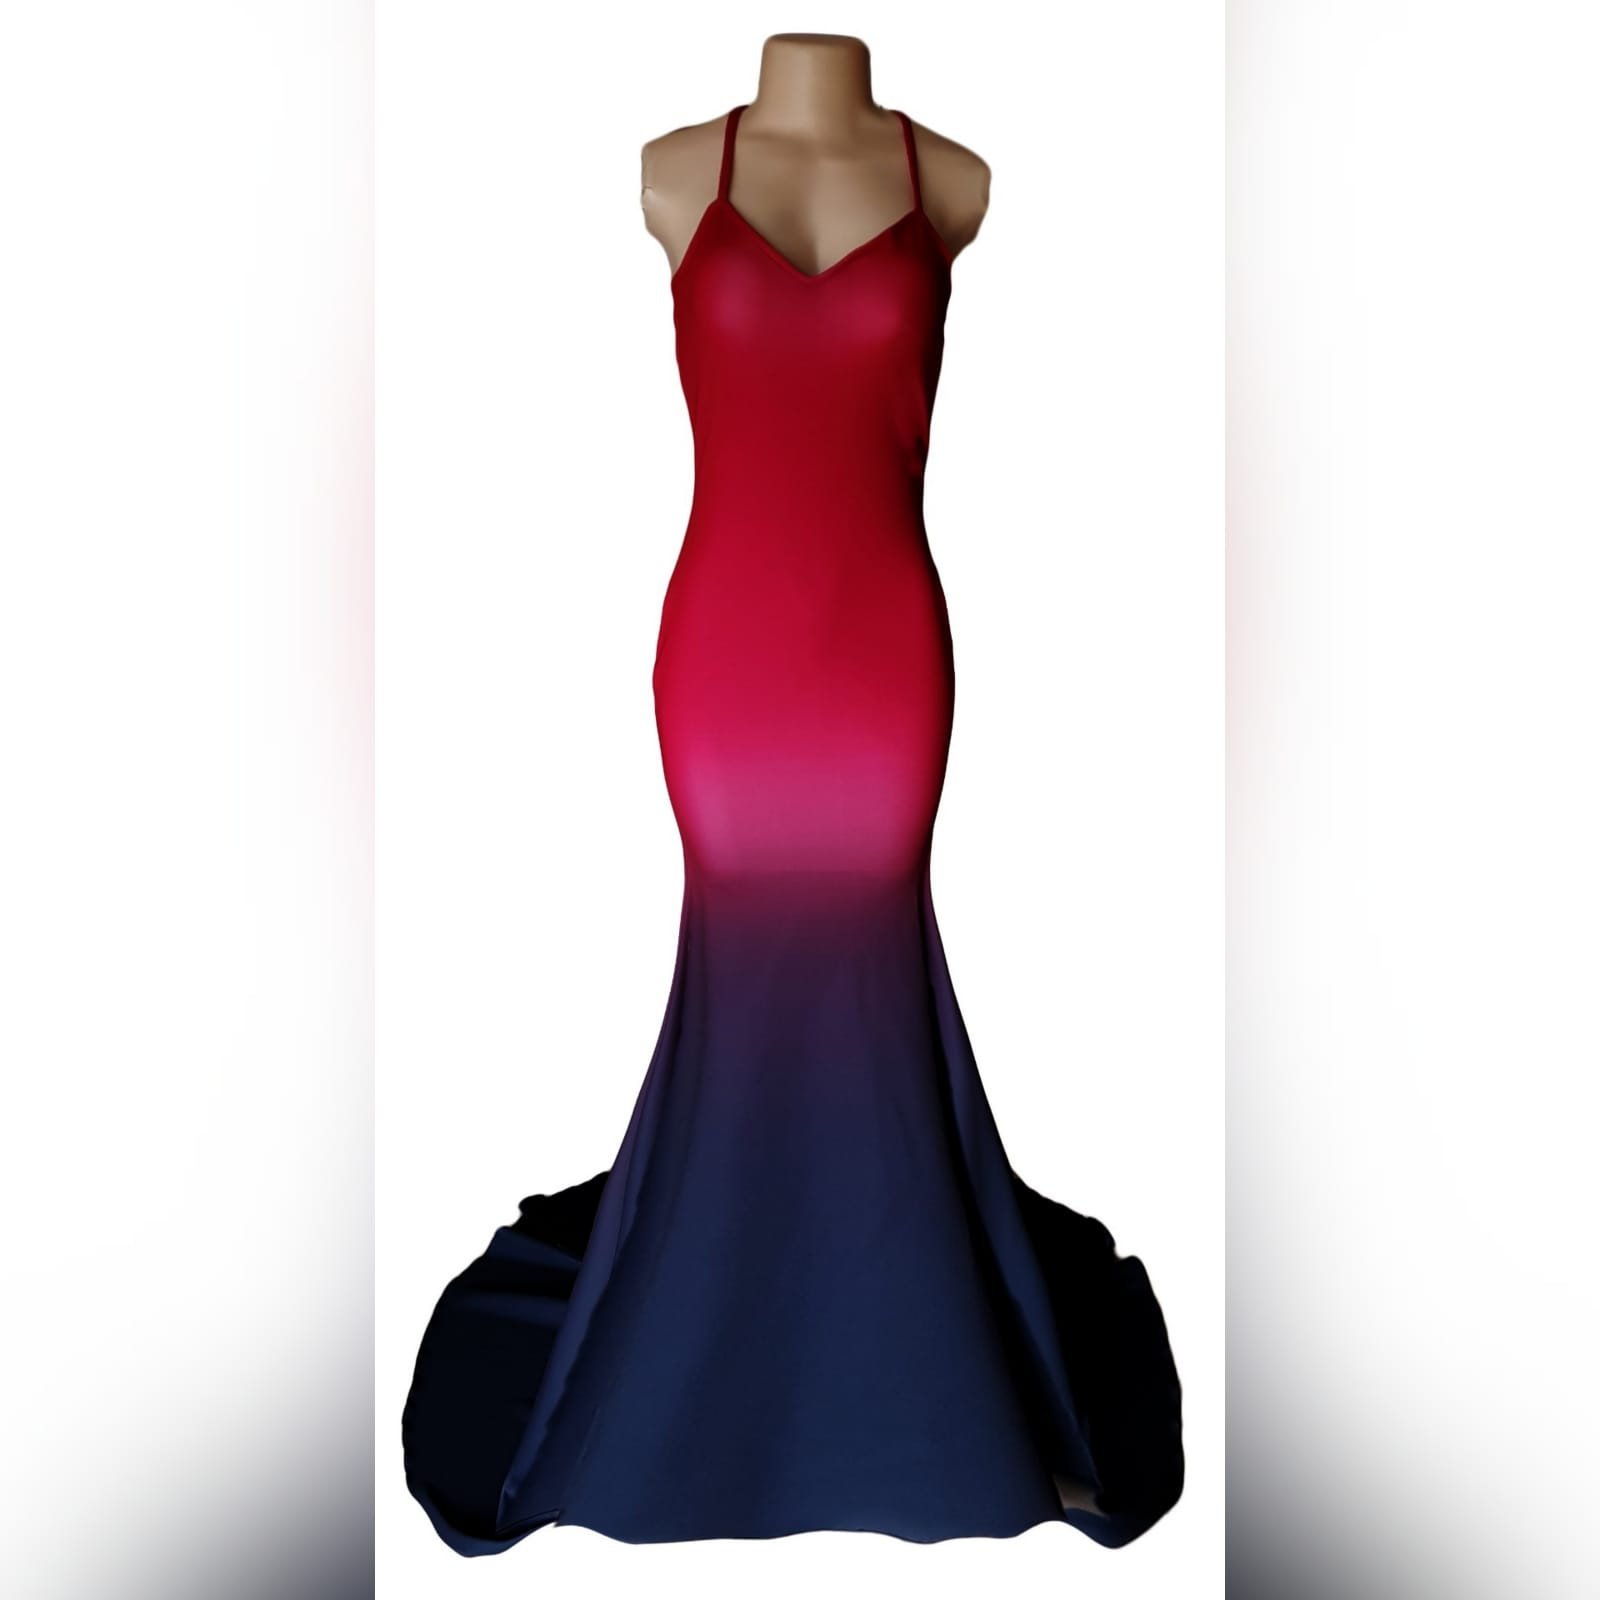 Red black ombre mermaid prom dress 2 red and black ombre mermaid sexy prom dress. With a v neckline, low open back with crossed shoulder straps and long train.